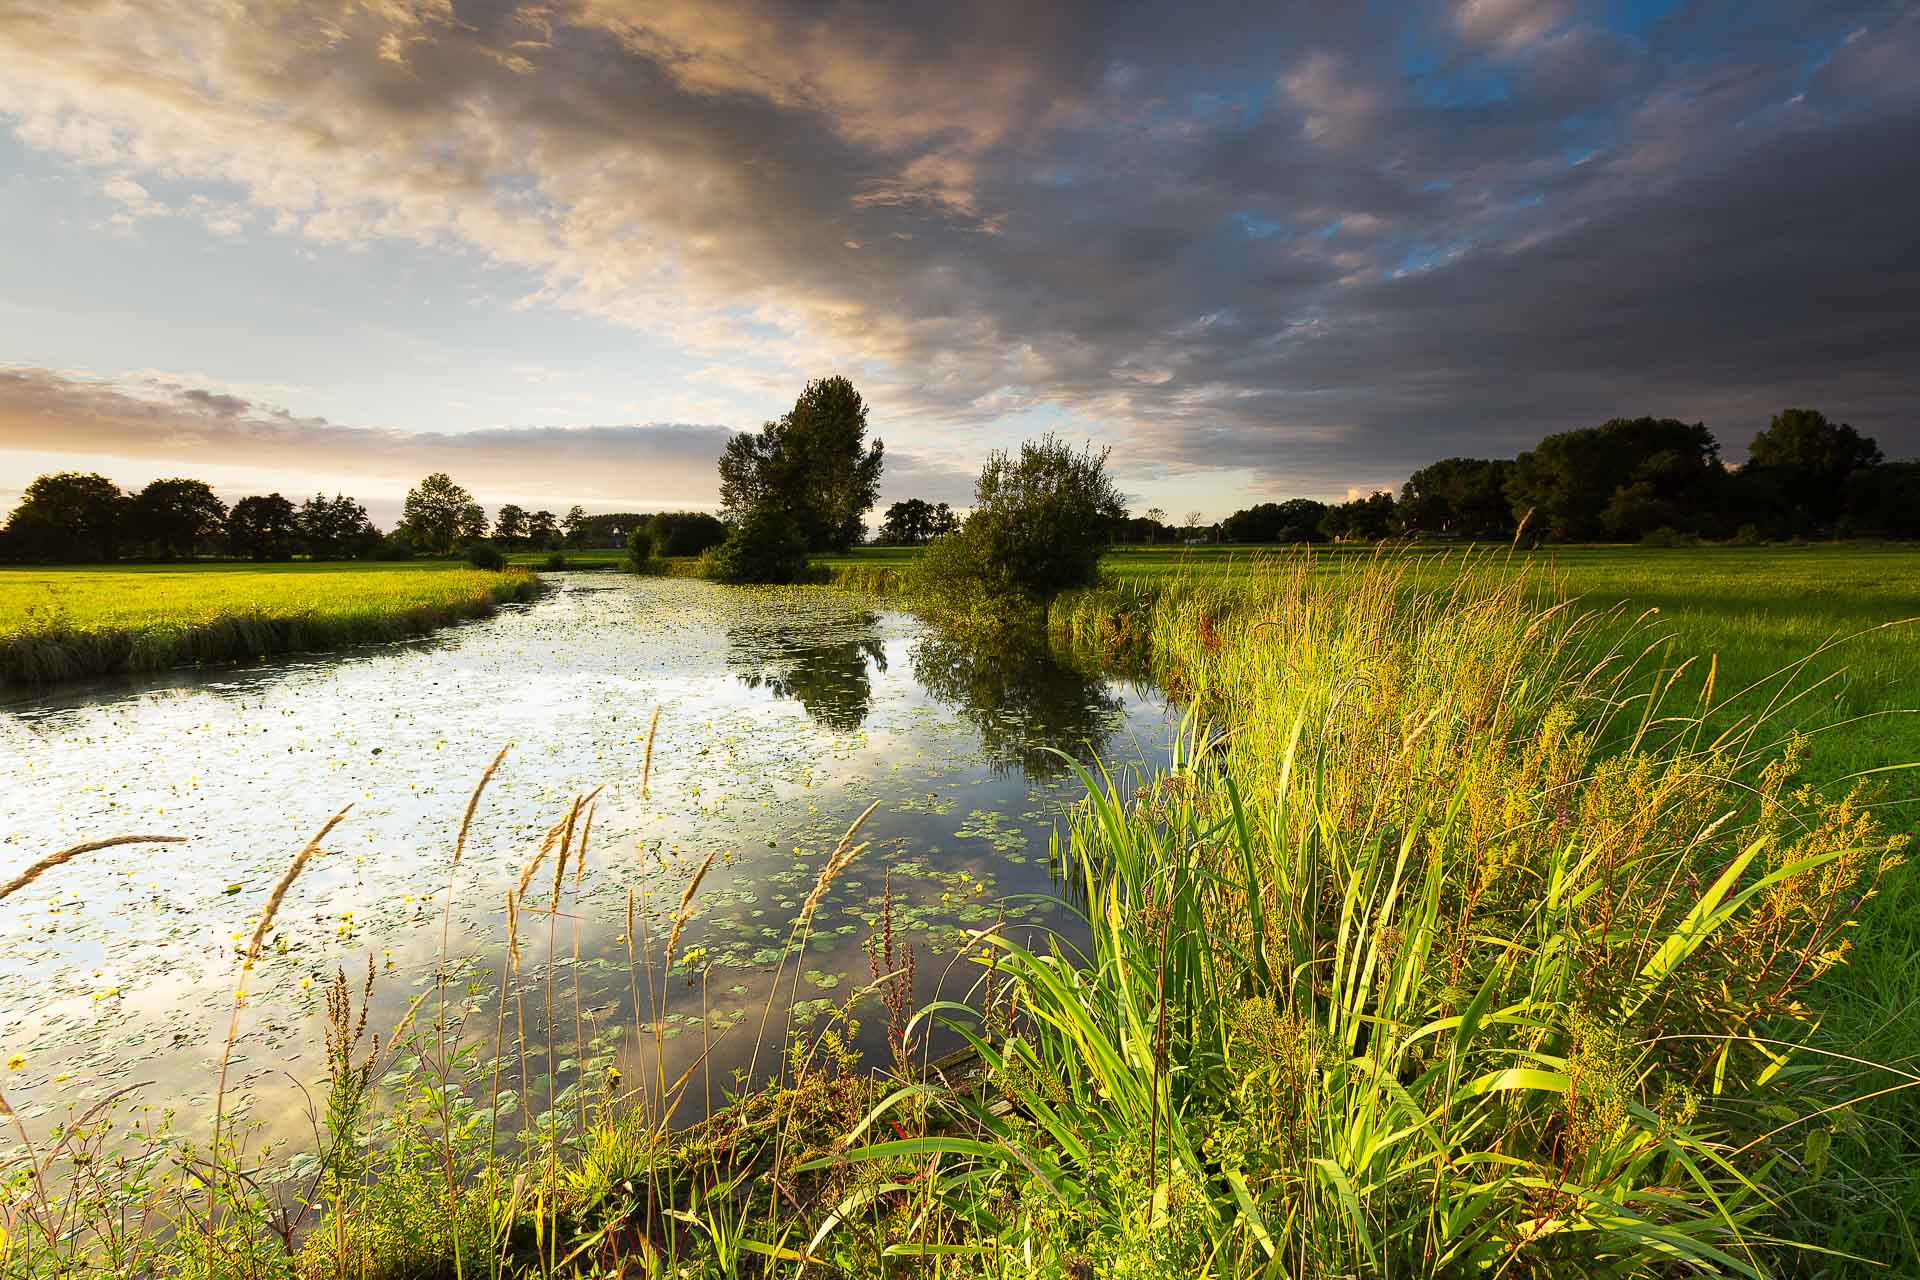 Sunset at the river Reest near Meppel, The Netherlands